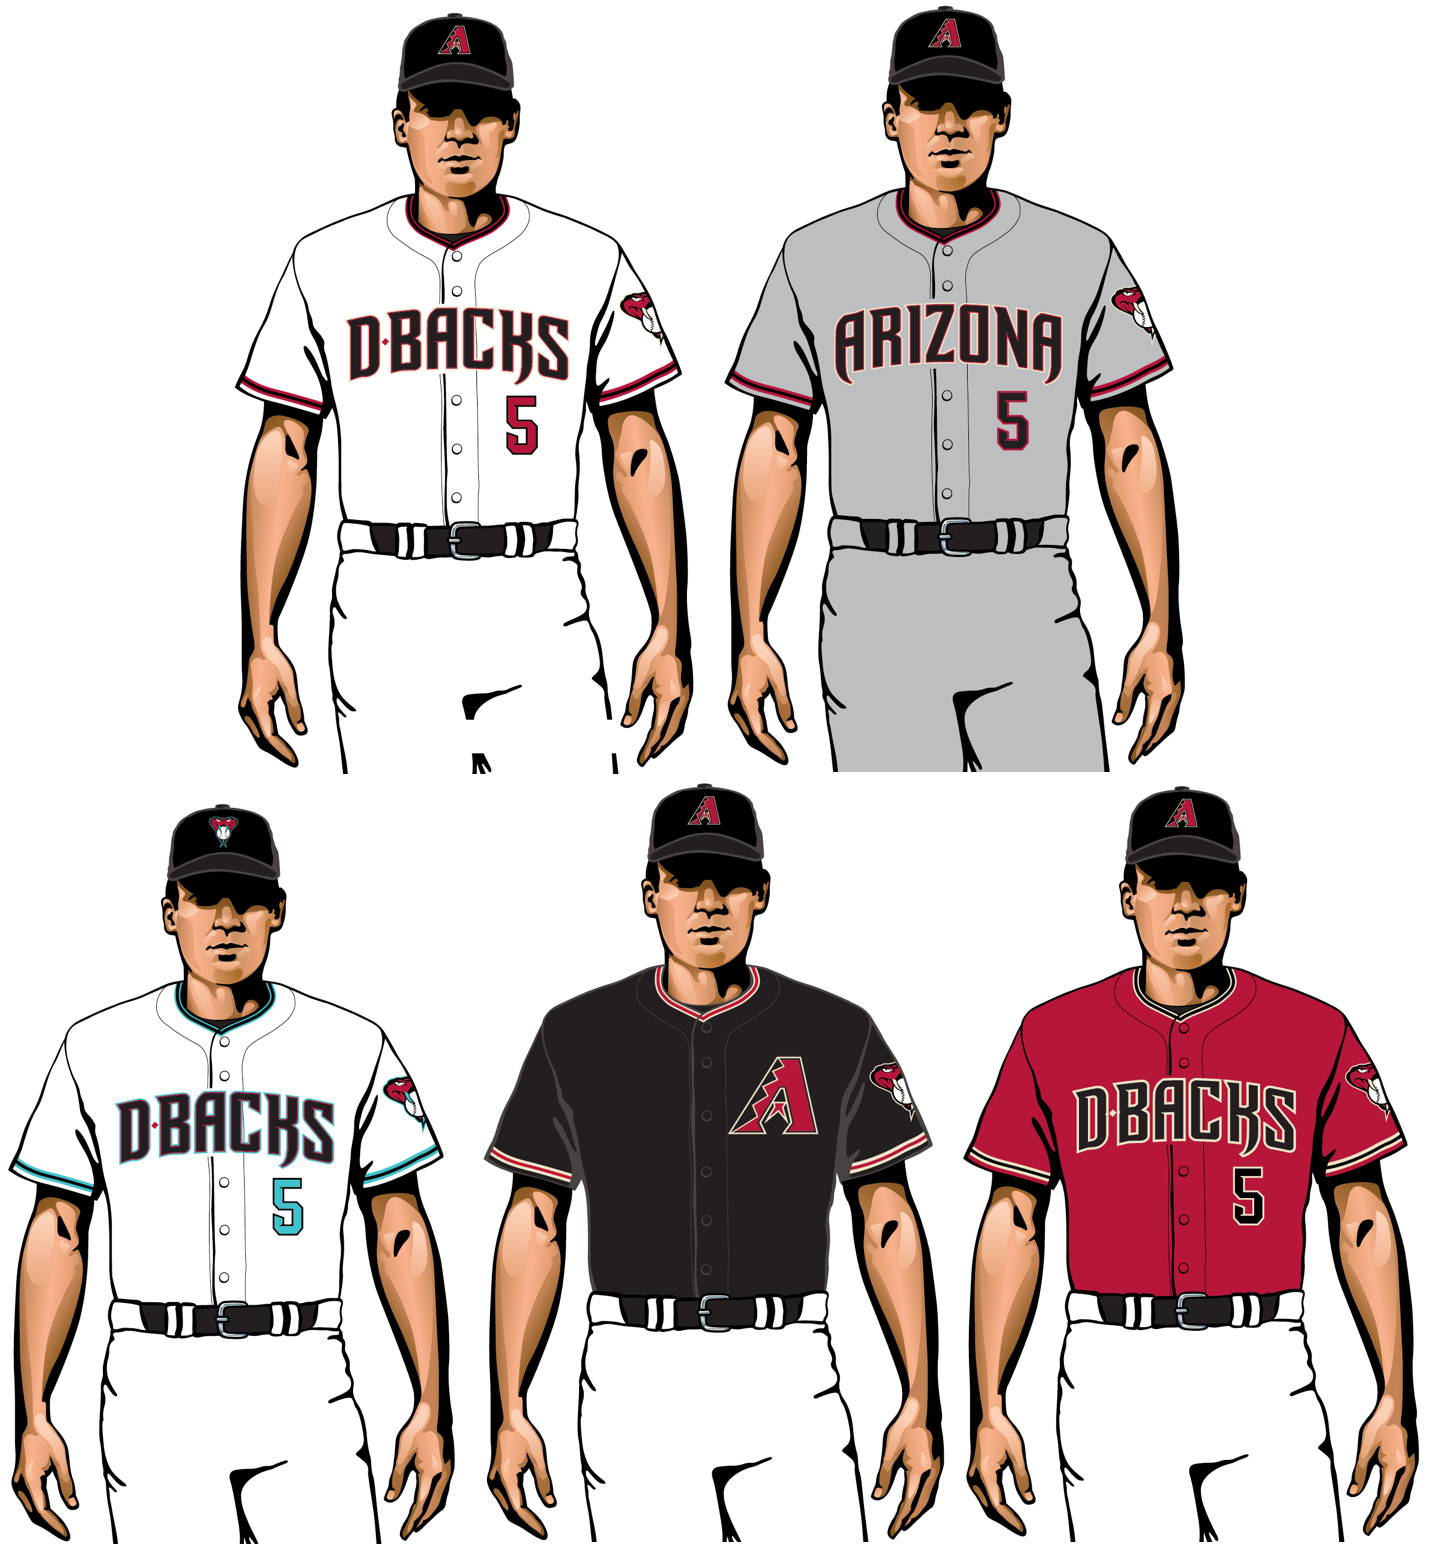 arizona diamondbacks 2020 uniforms